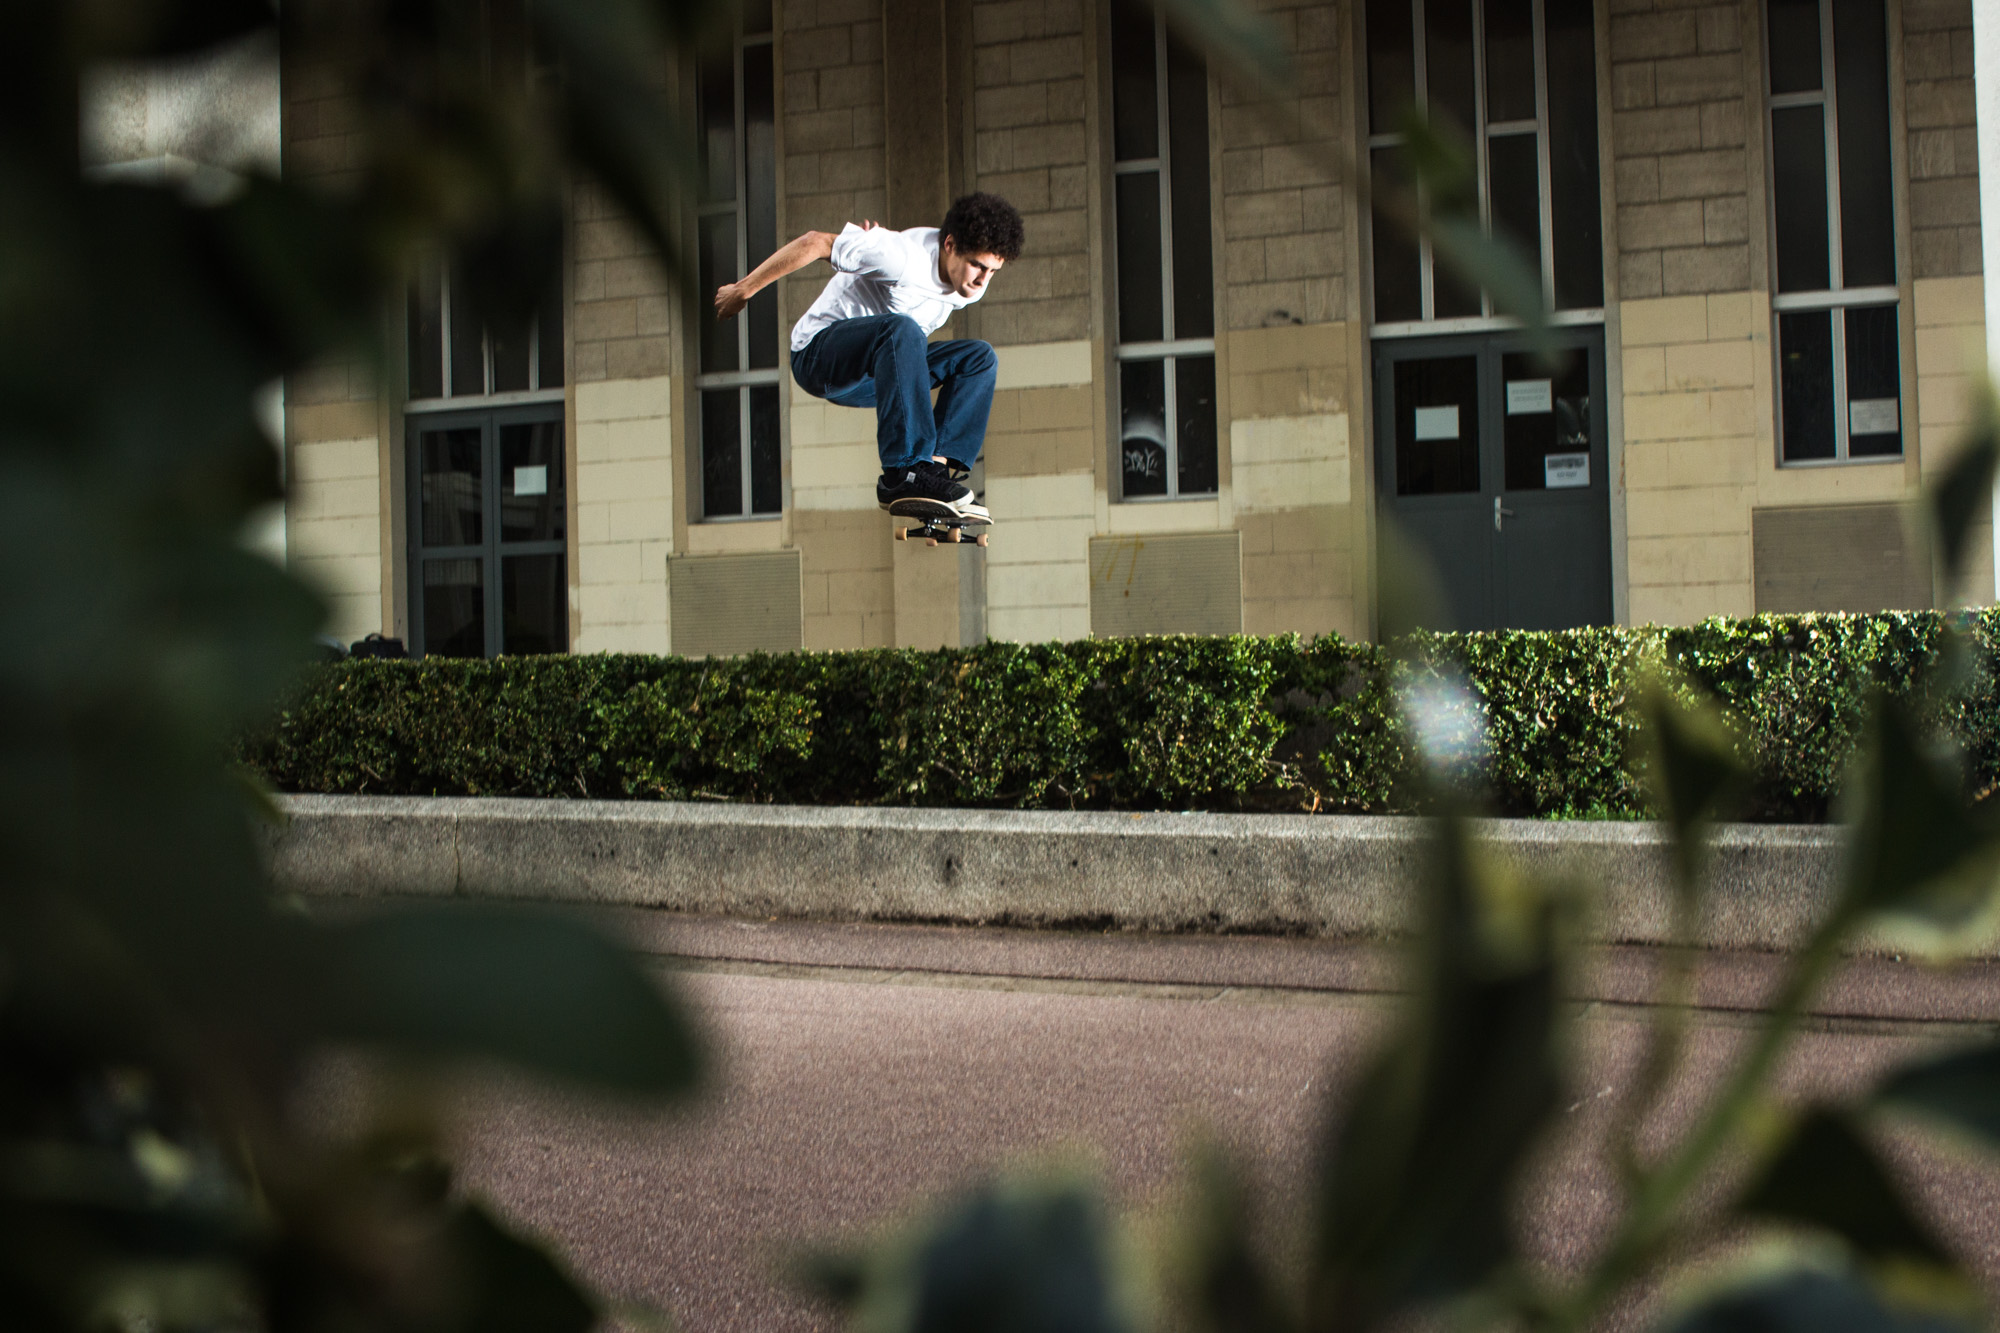 Gap en skateboard dans l'université de caen